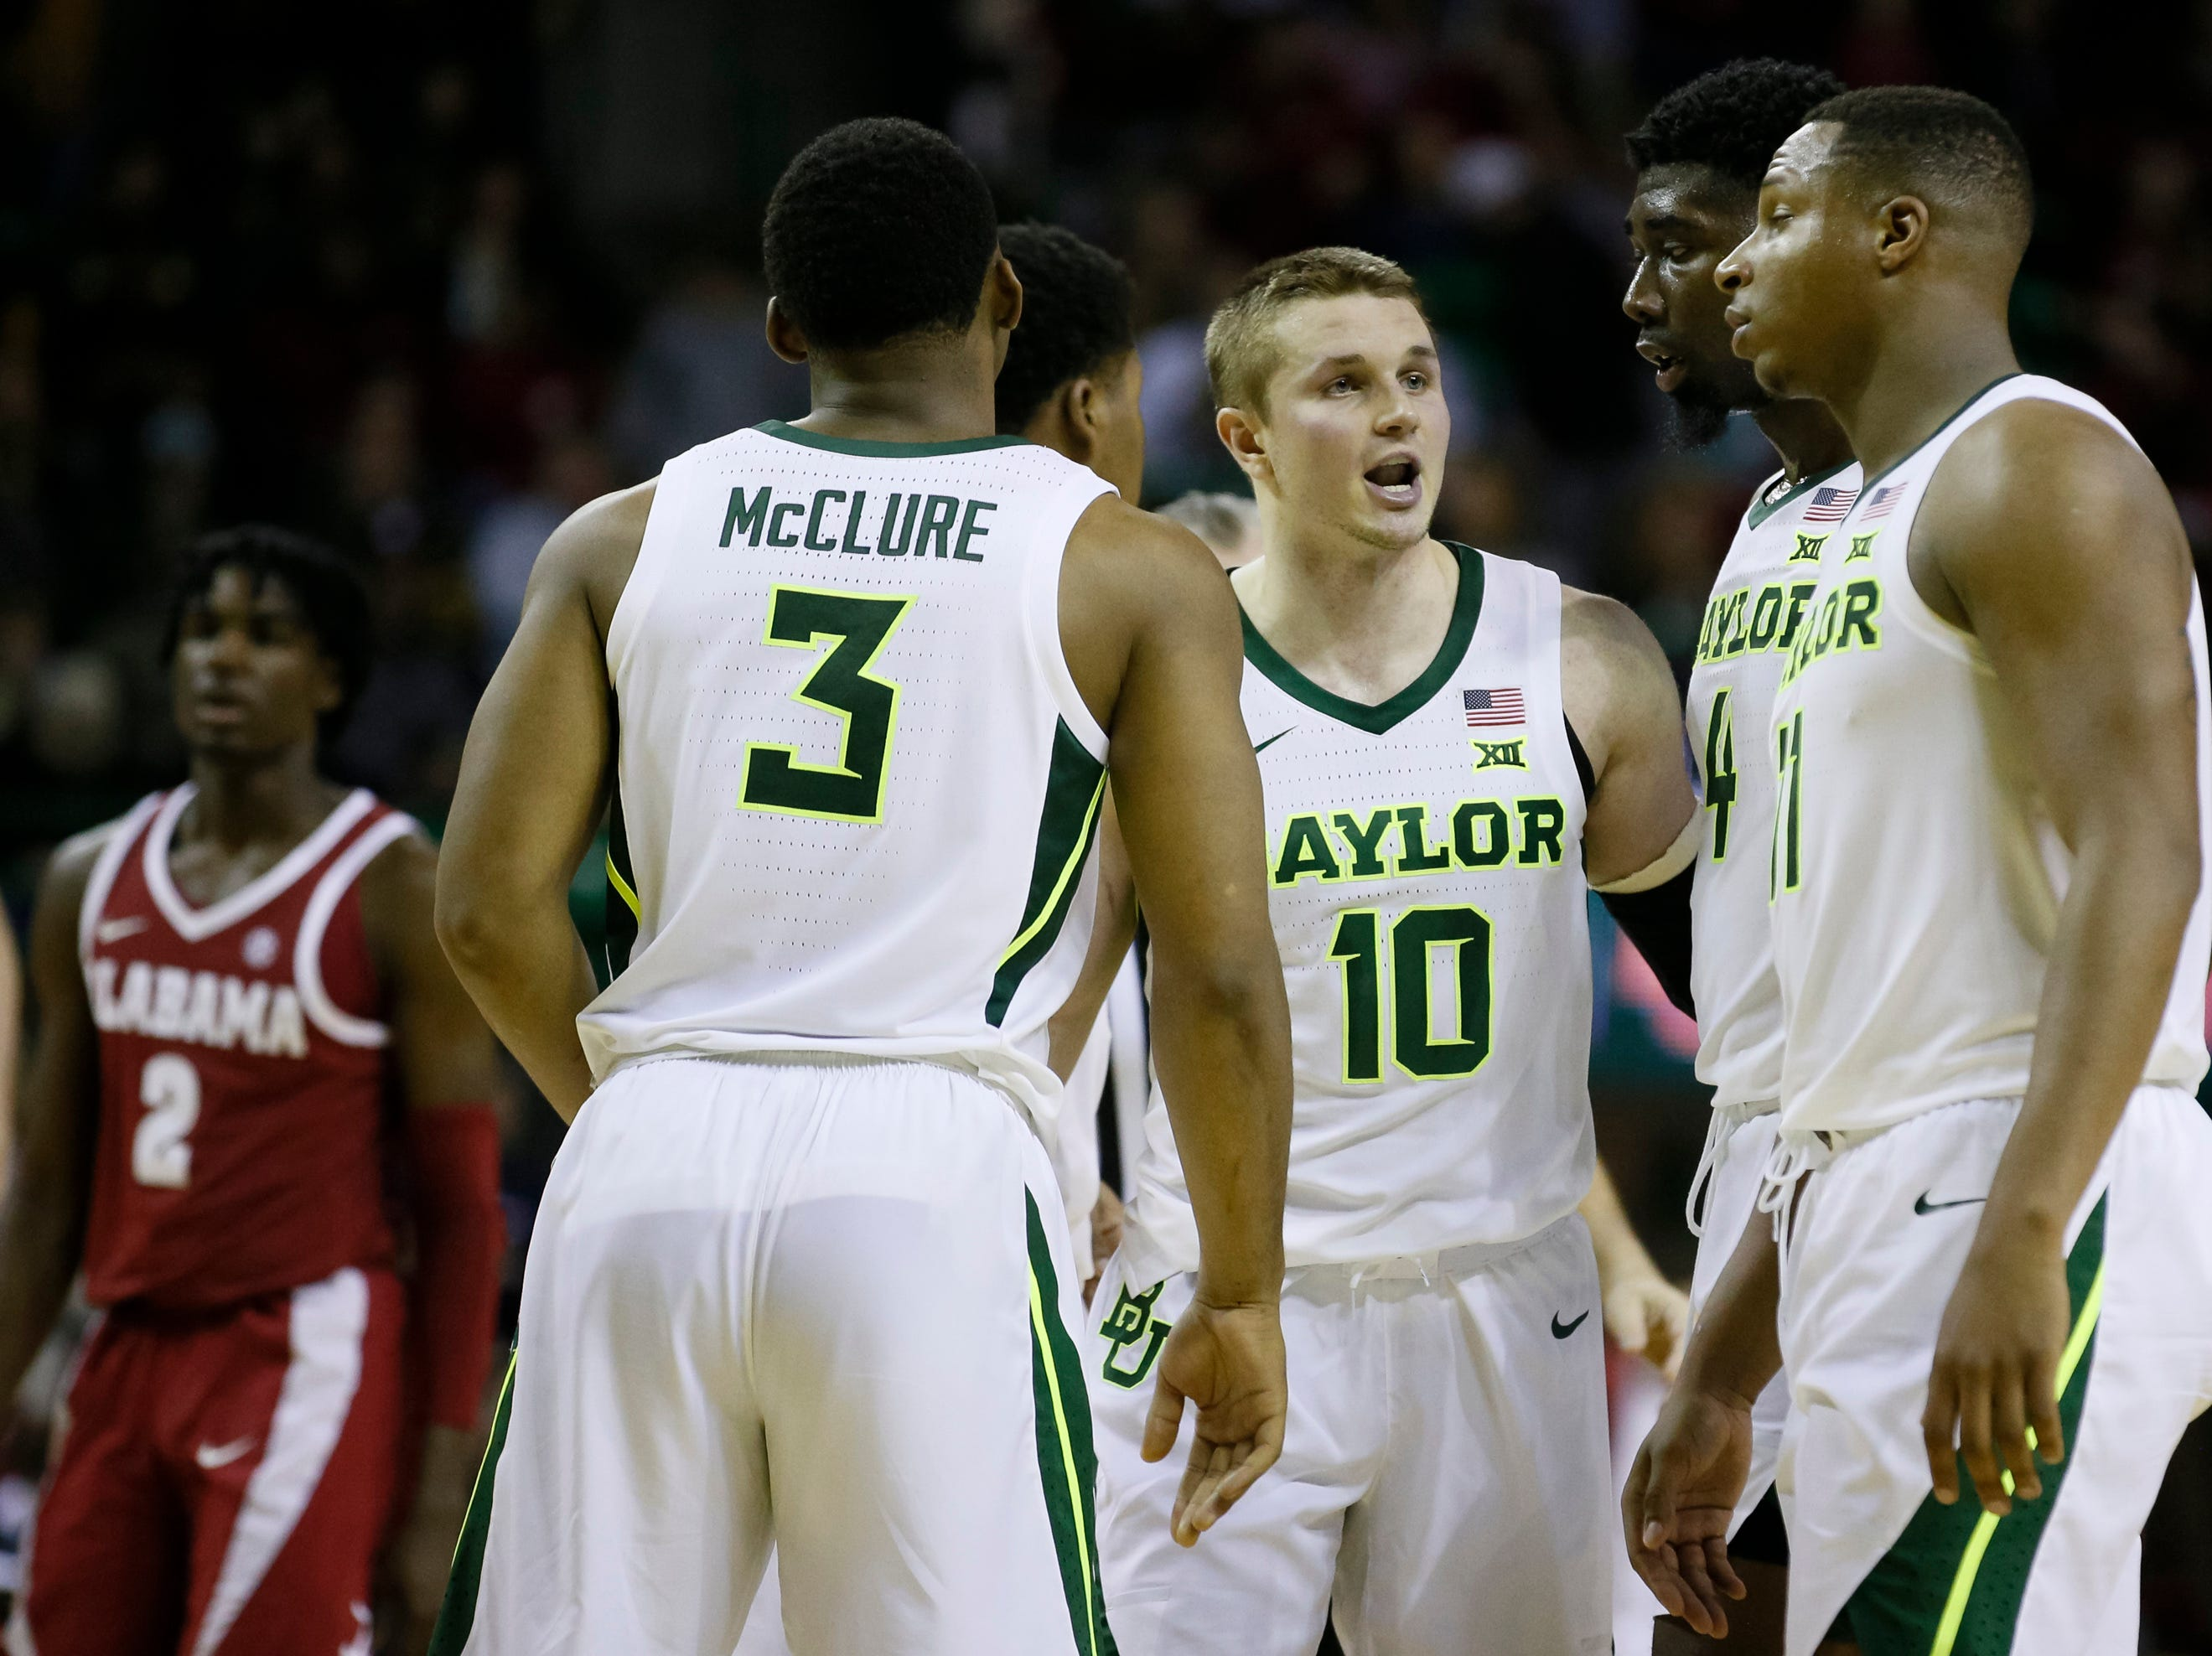 Jan 26, 2019; Waco, TX, USA; Baylor Bears guard Makai Mason (10) huddles the teammates during the second half against the Alabama Crimson Tide at Ferrell Center. Mandatory Credit: Ray Carlin-USA TODAY Sports